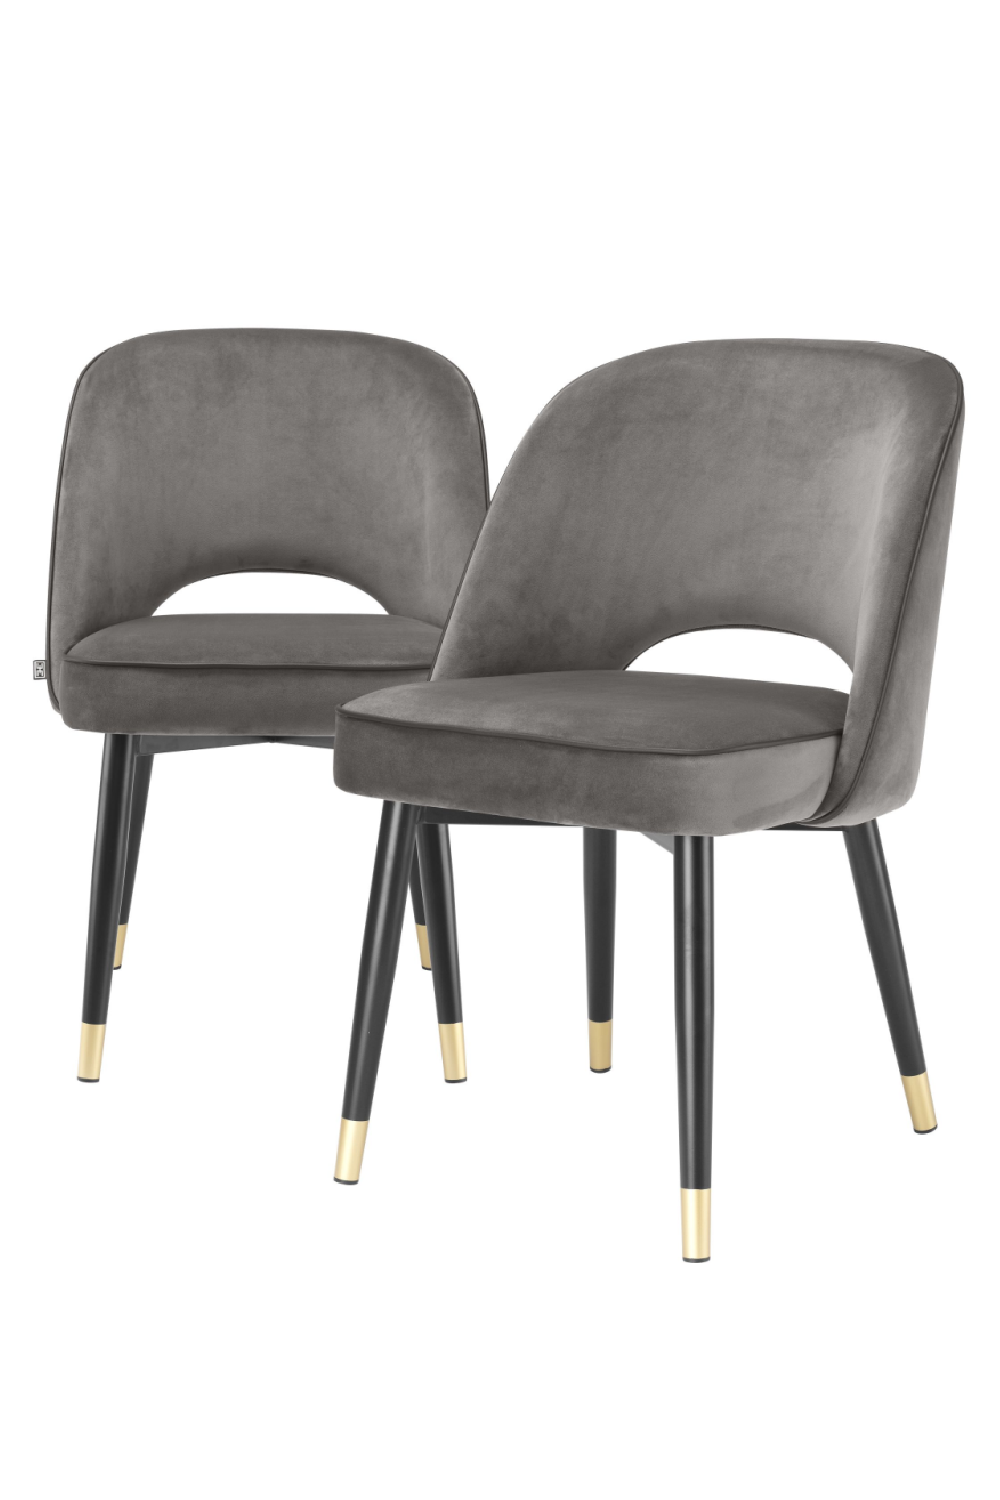 Gray Velvet Dining Chair Set Of 2 | Eichholtz Cliff